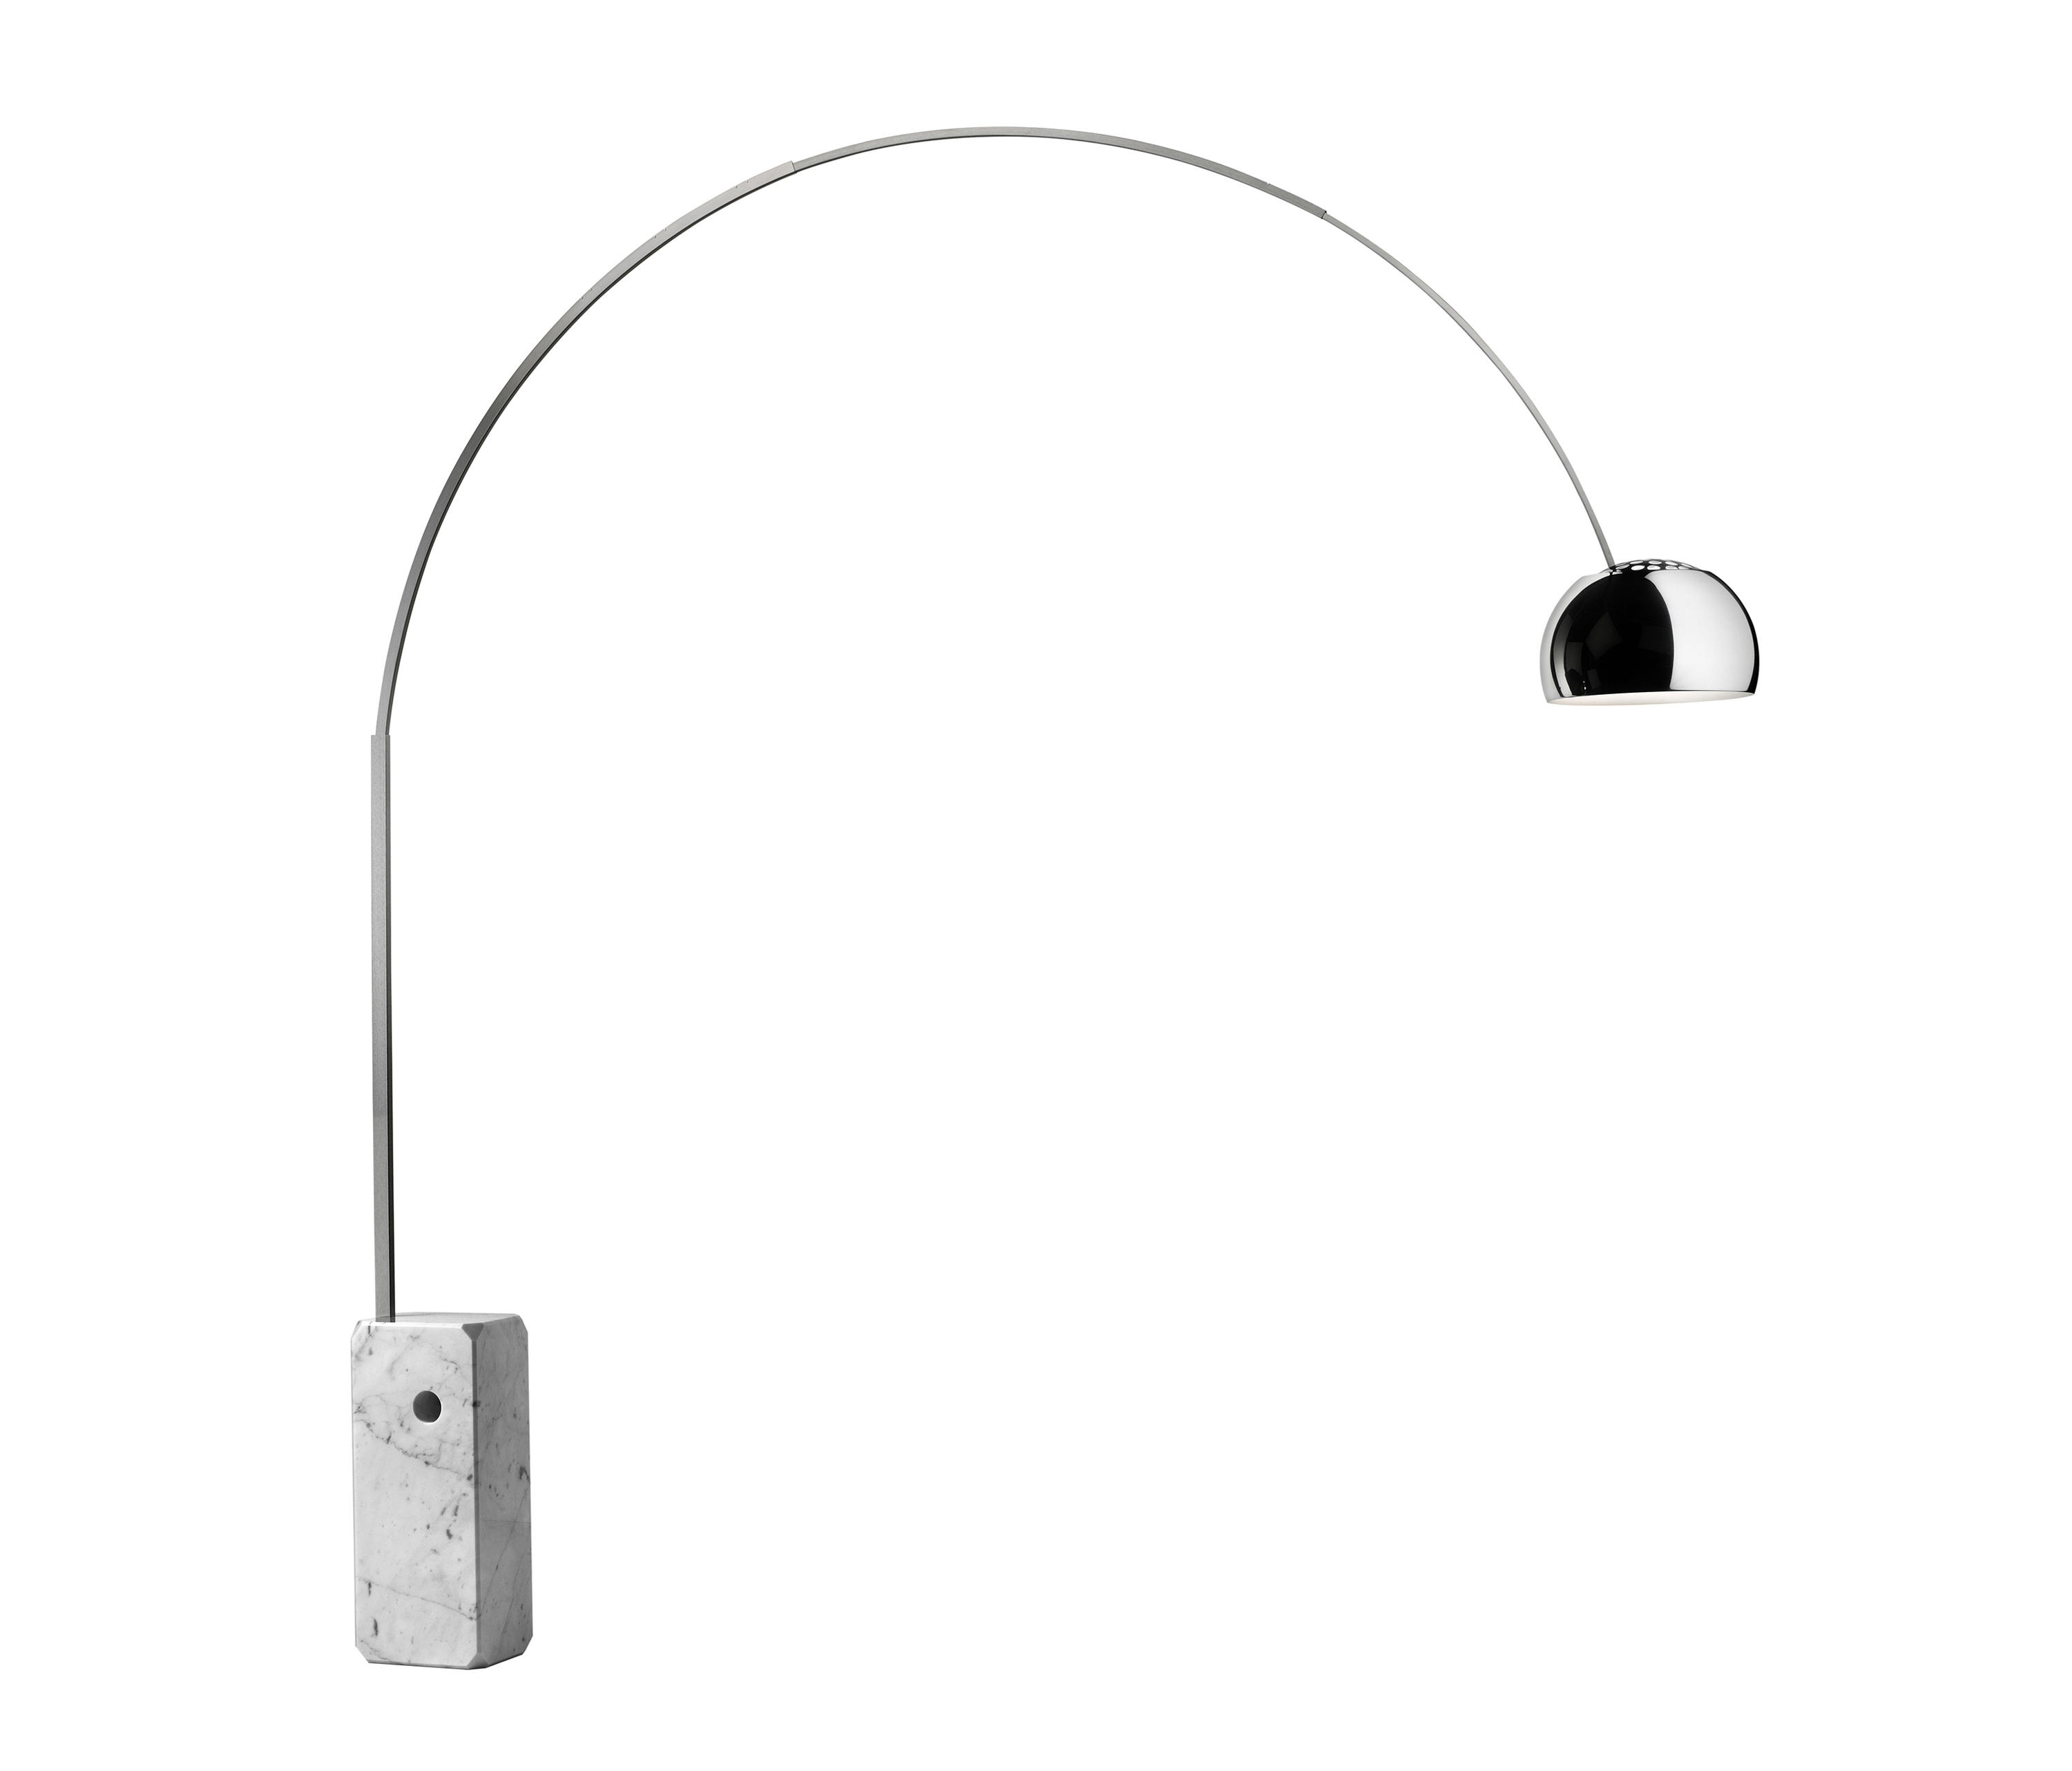 Lampara Pie Arco Arco Arco Led Lámparas De Pie De Flos Architonic